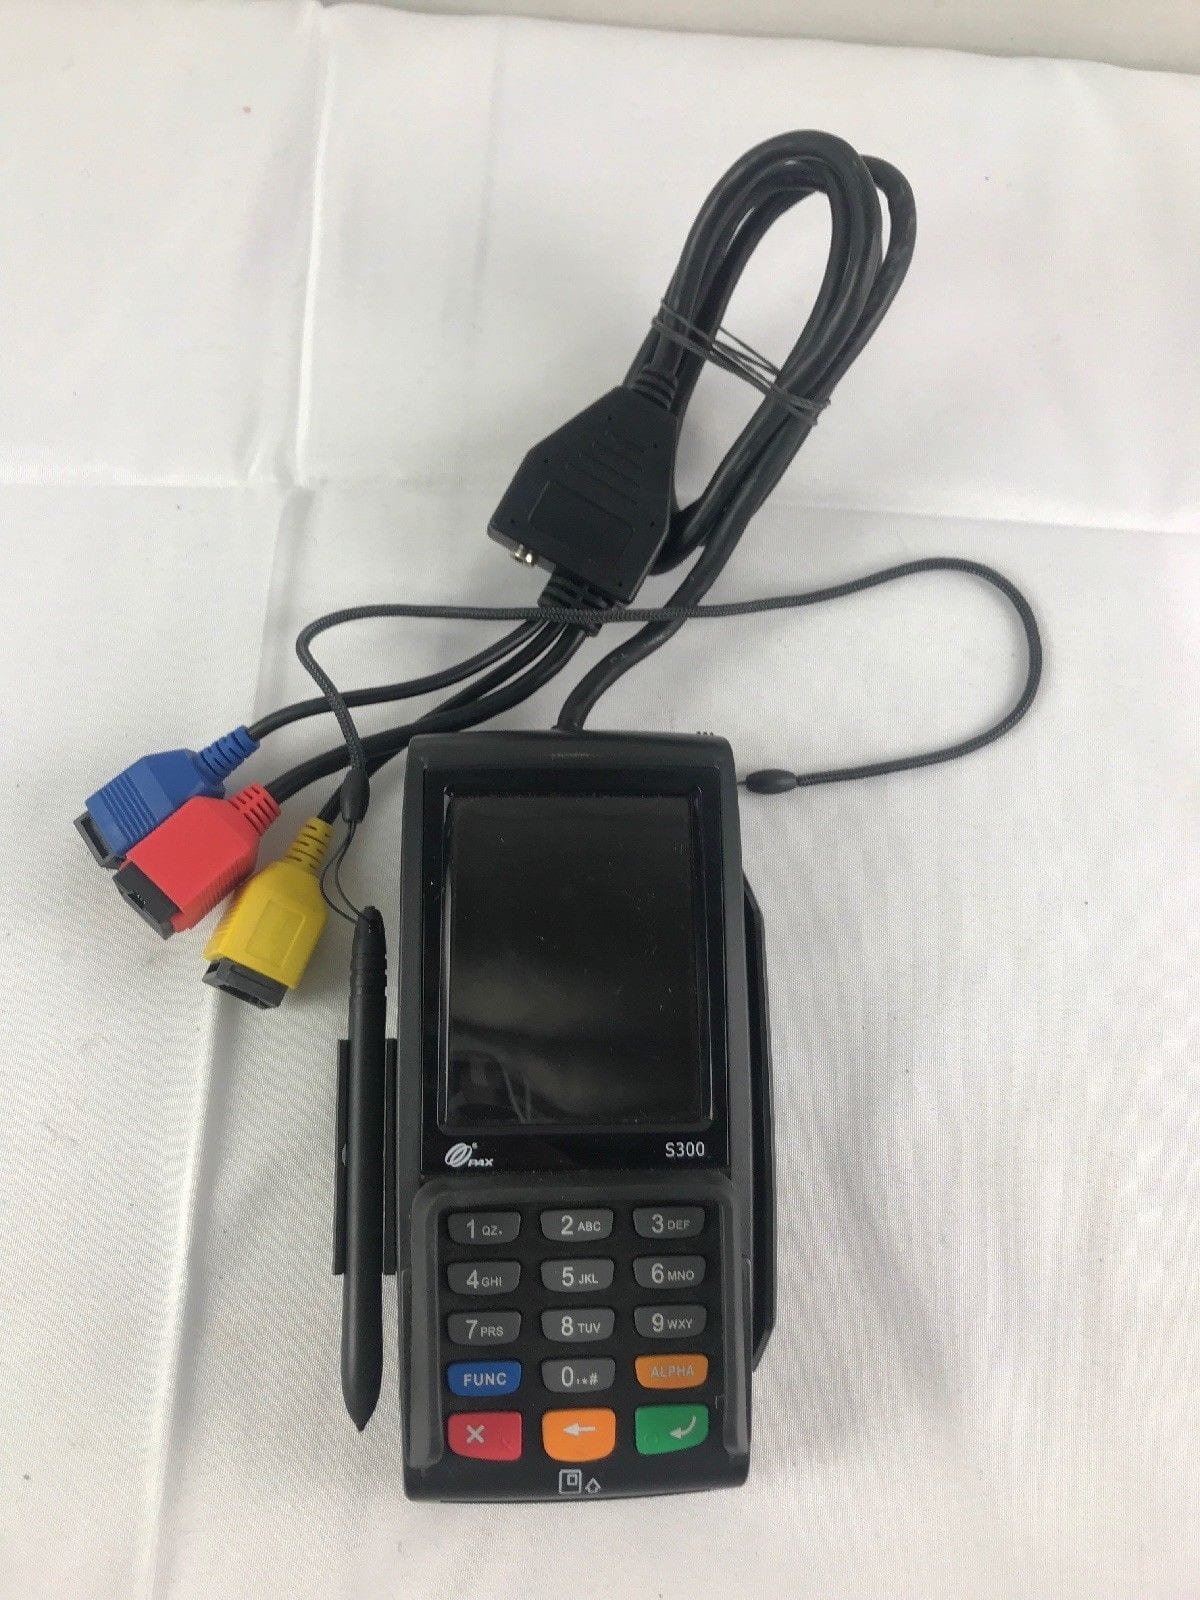 PAX s300 PINPAD EMV POS CHIP CARD READER AB28 – Witheasenow